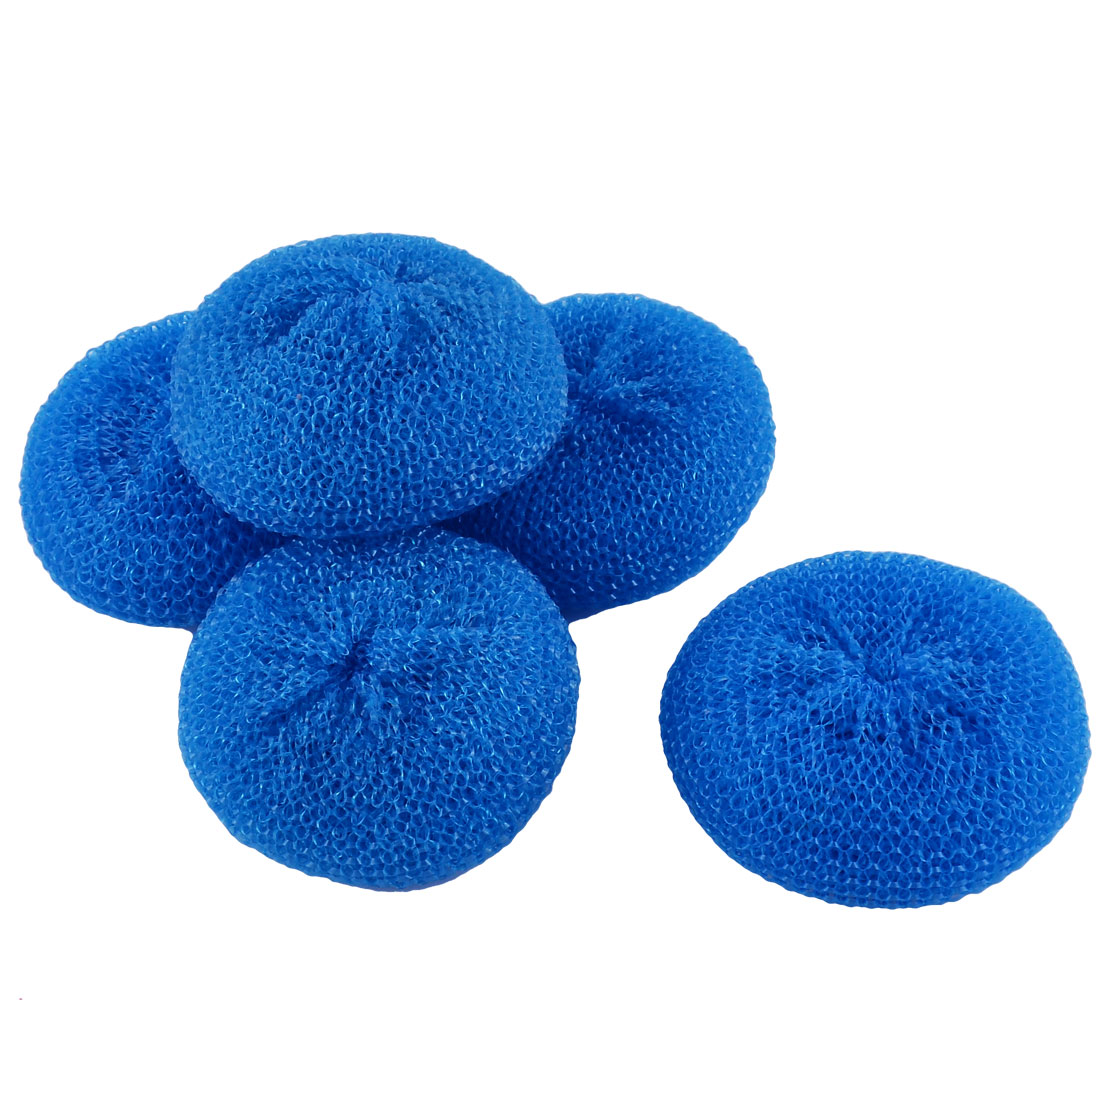 Dish Pot Pan Plastic Mesh Scouring Washing Cleaning Scrubber Pad Blue 5pcs